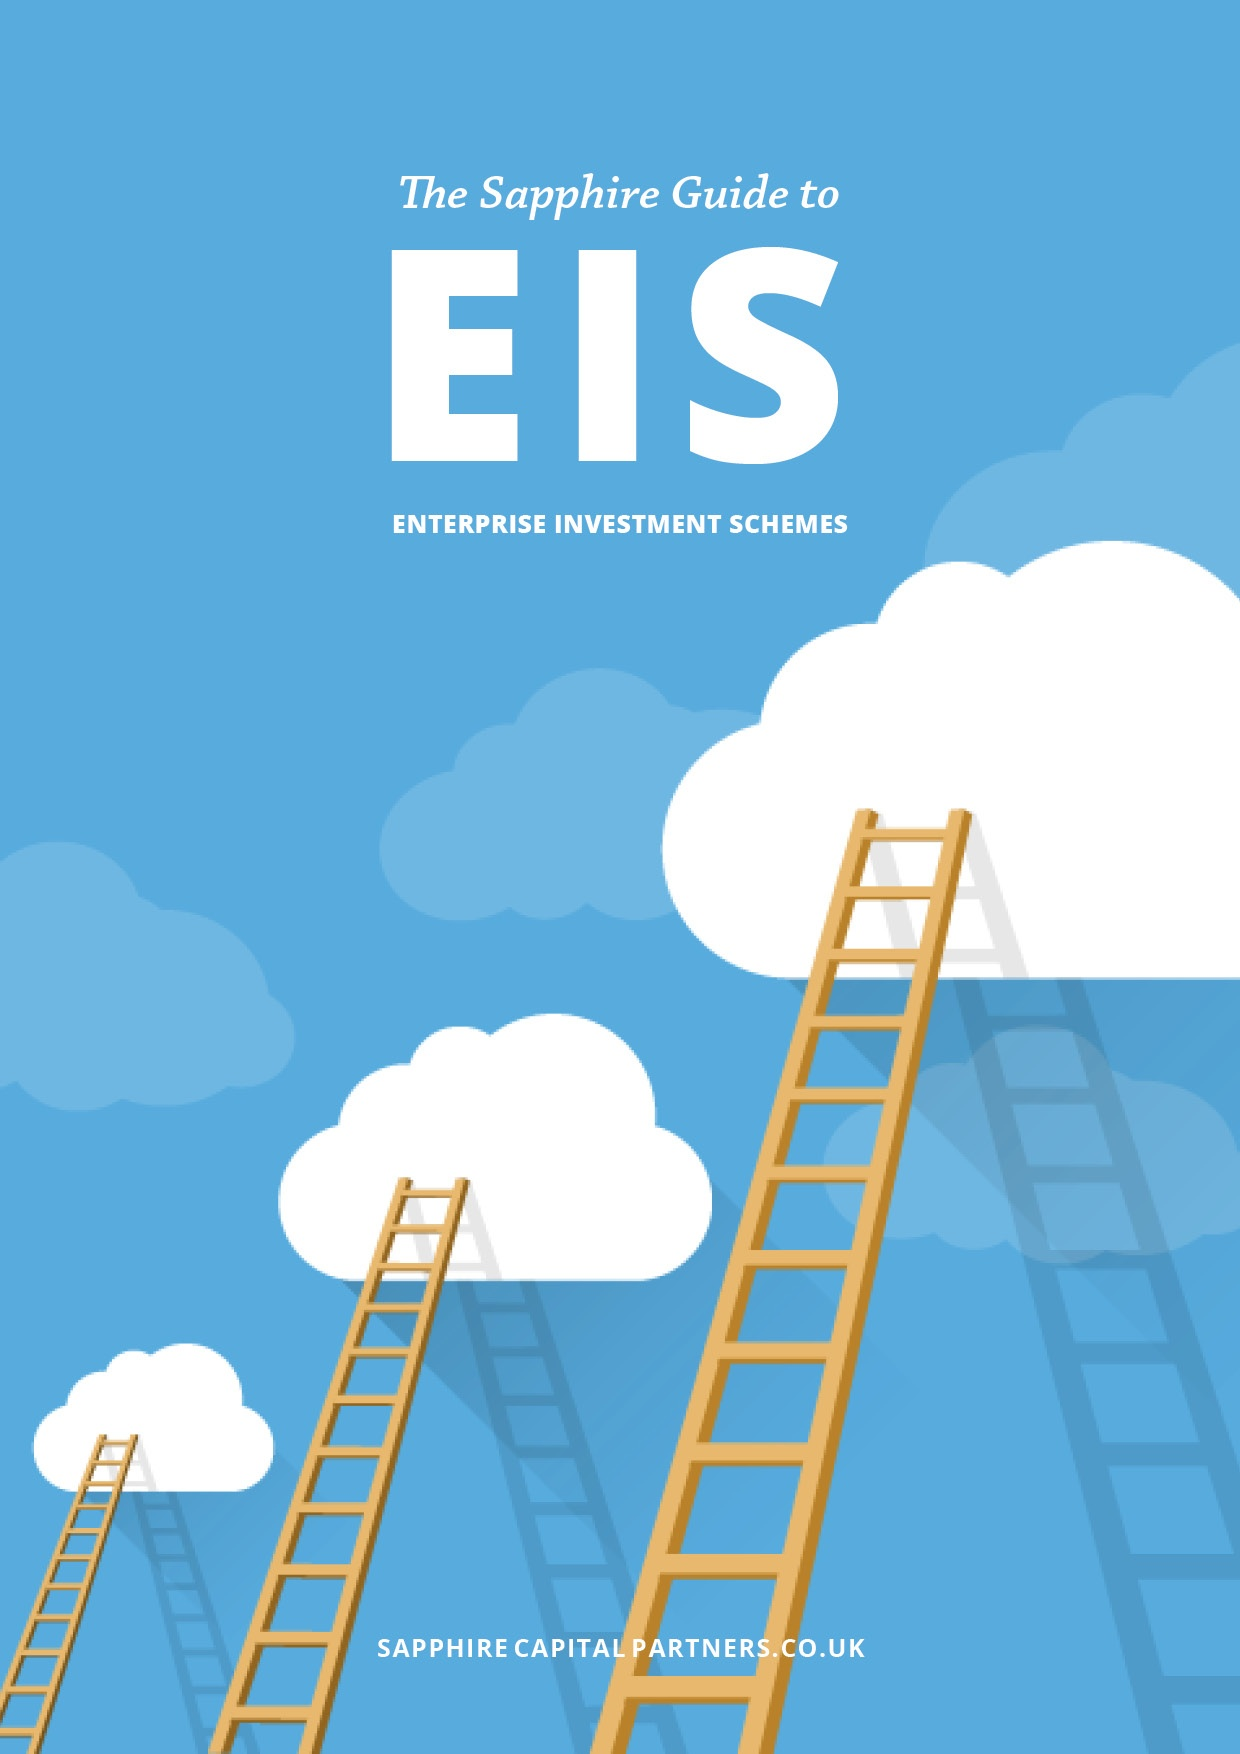 The Sapphire Guide to EIS eBook cover